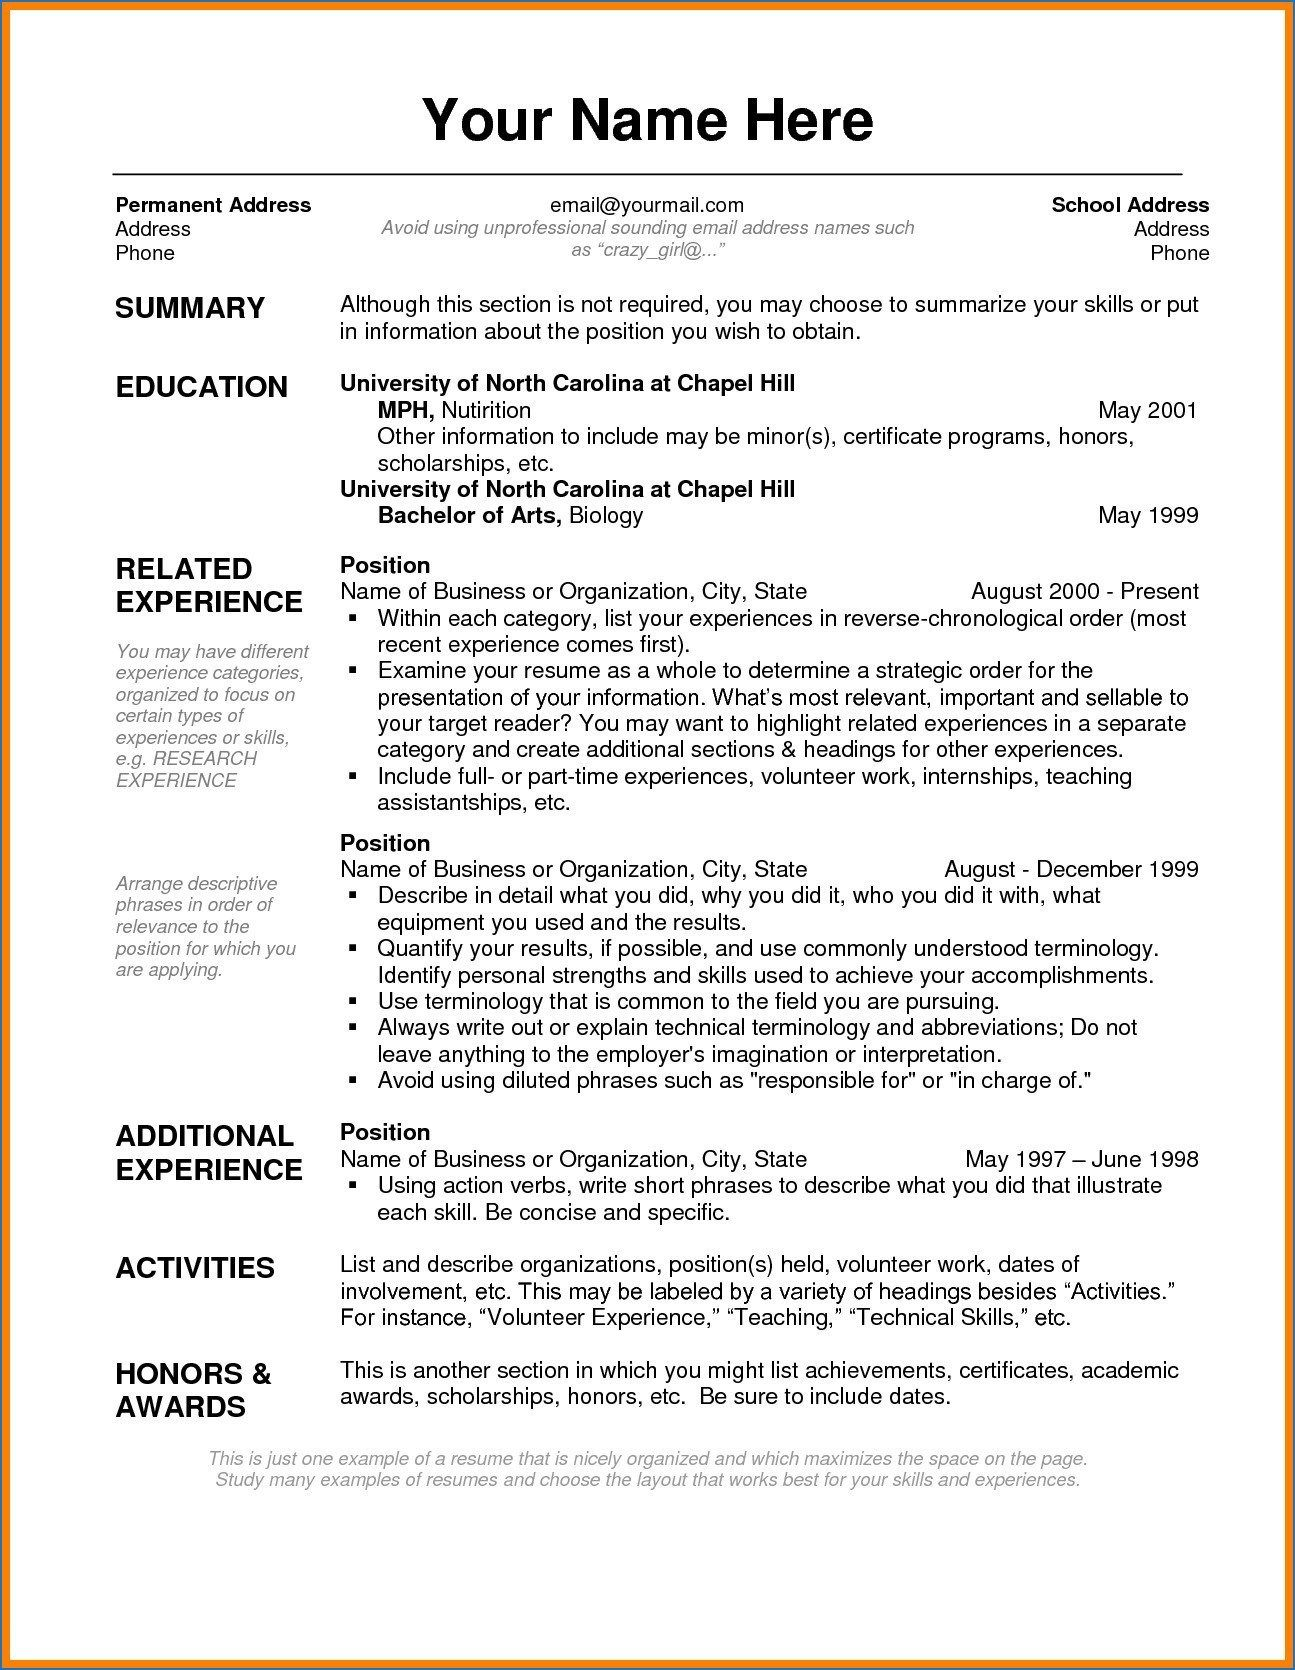 India Simple Resume Format Job Resume Format Cv Format For Job